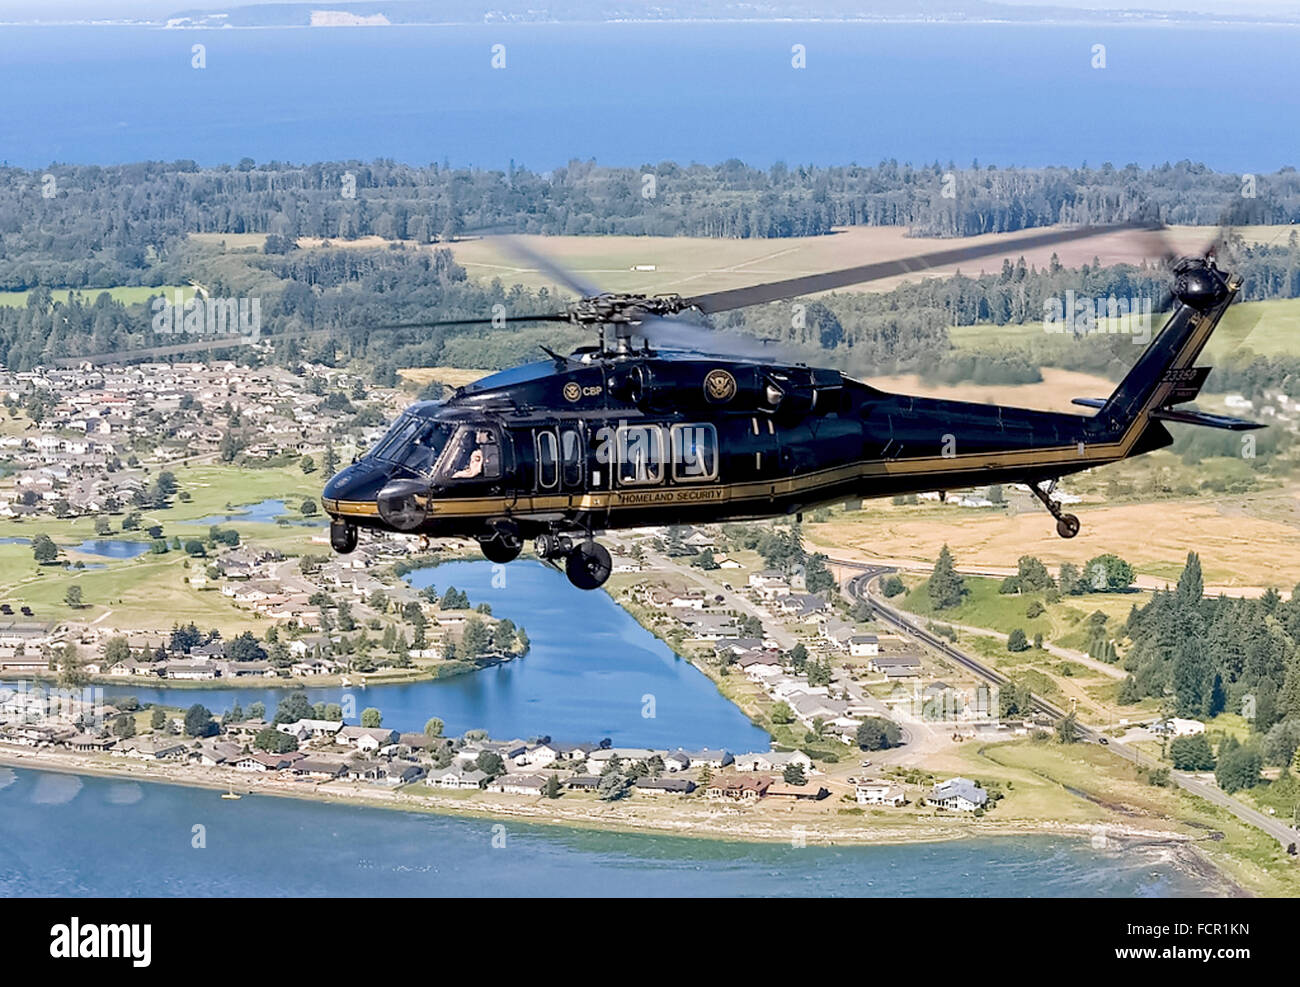 US Customs and Border Protection CBP Office of Air and Marine unit operating a Sikorsky UH-60 Blackhawk helicopter Stock Photo